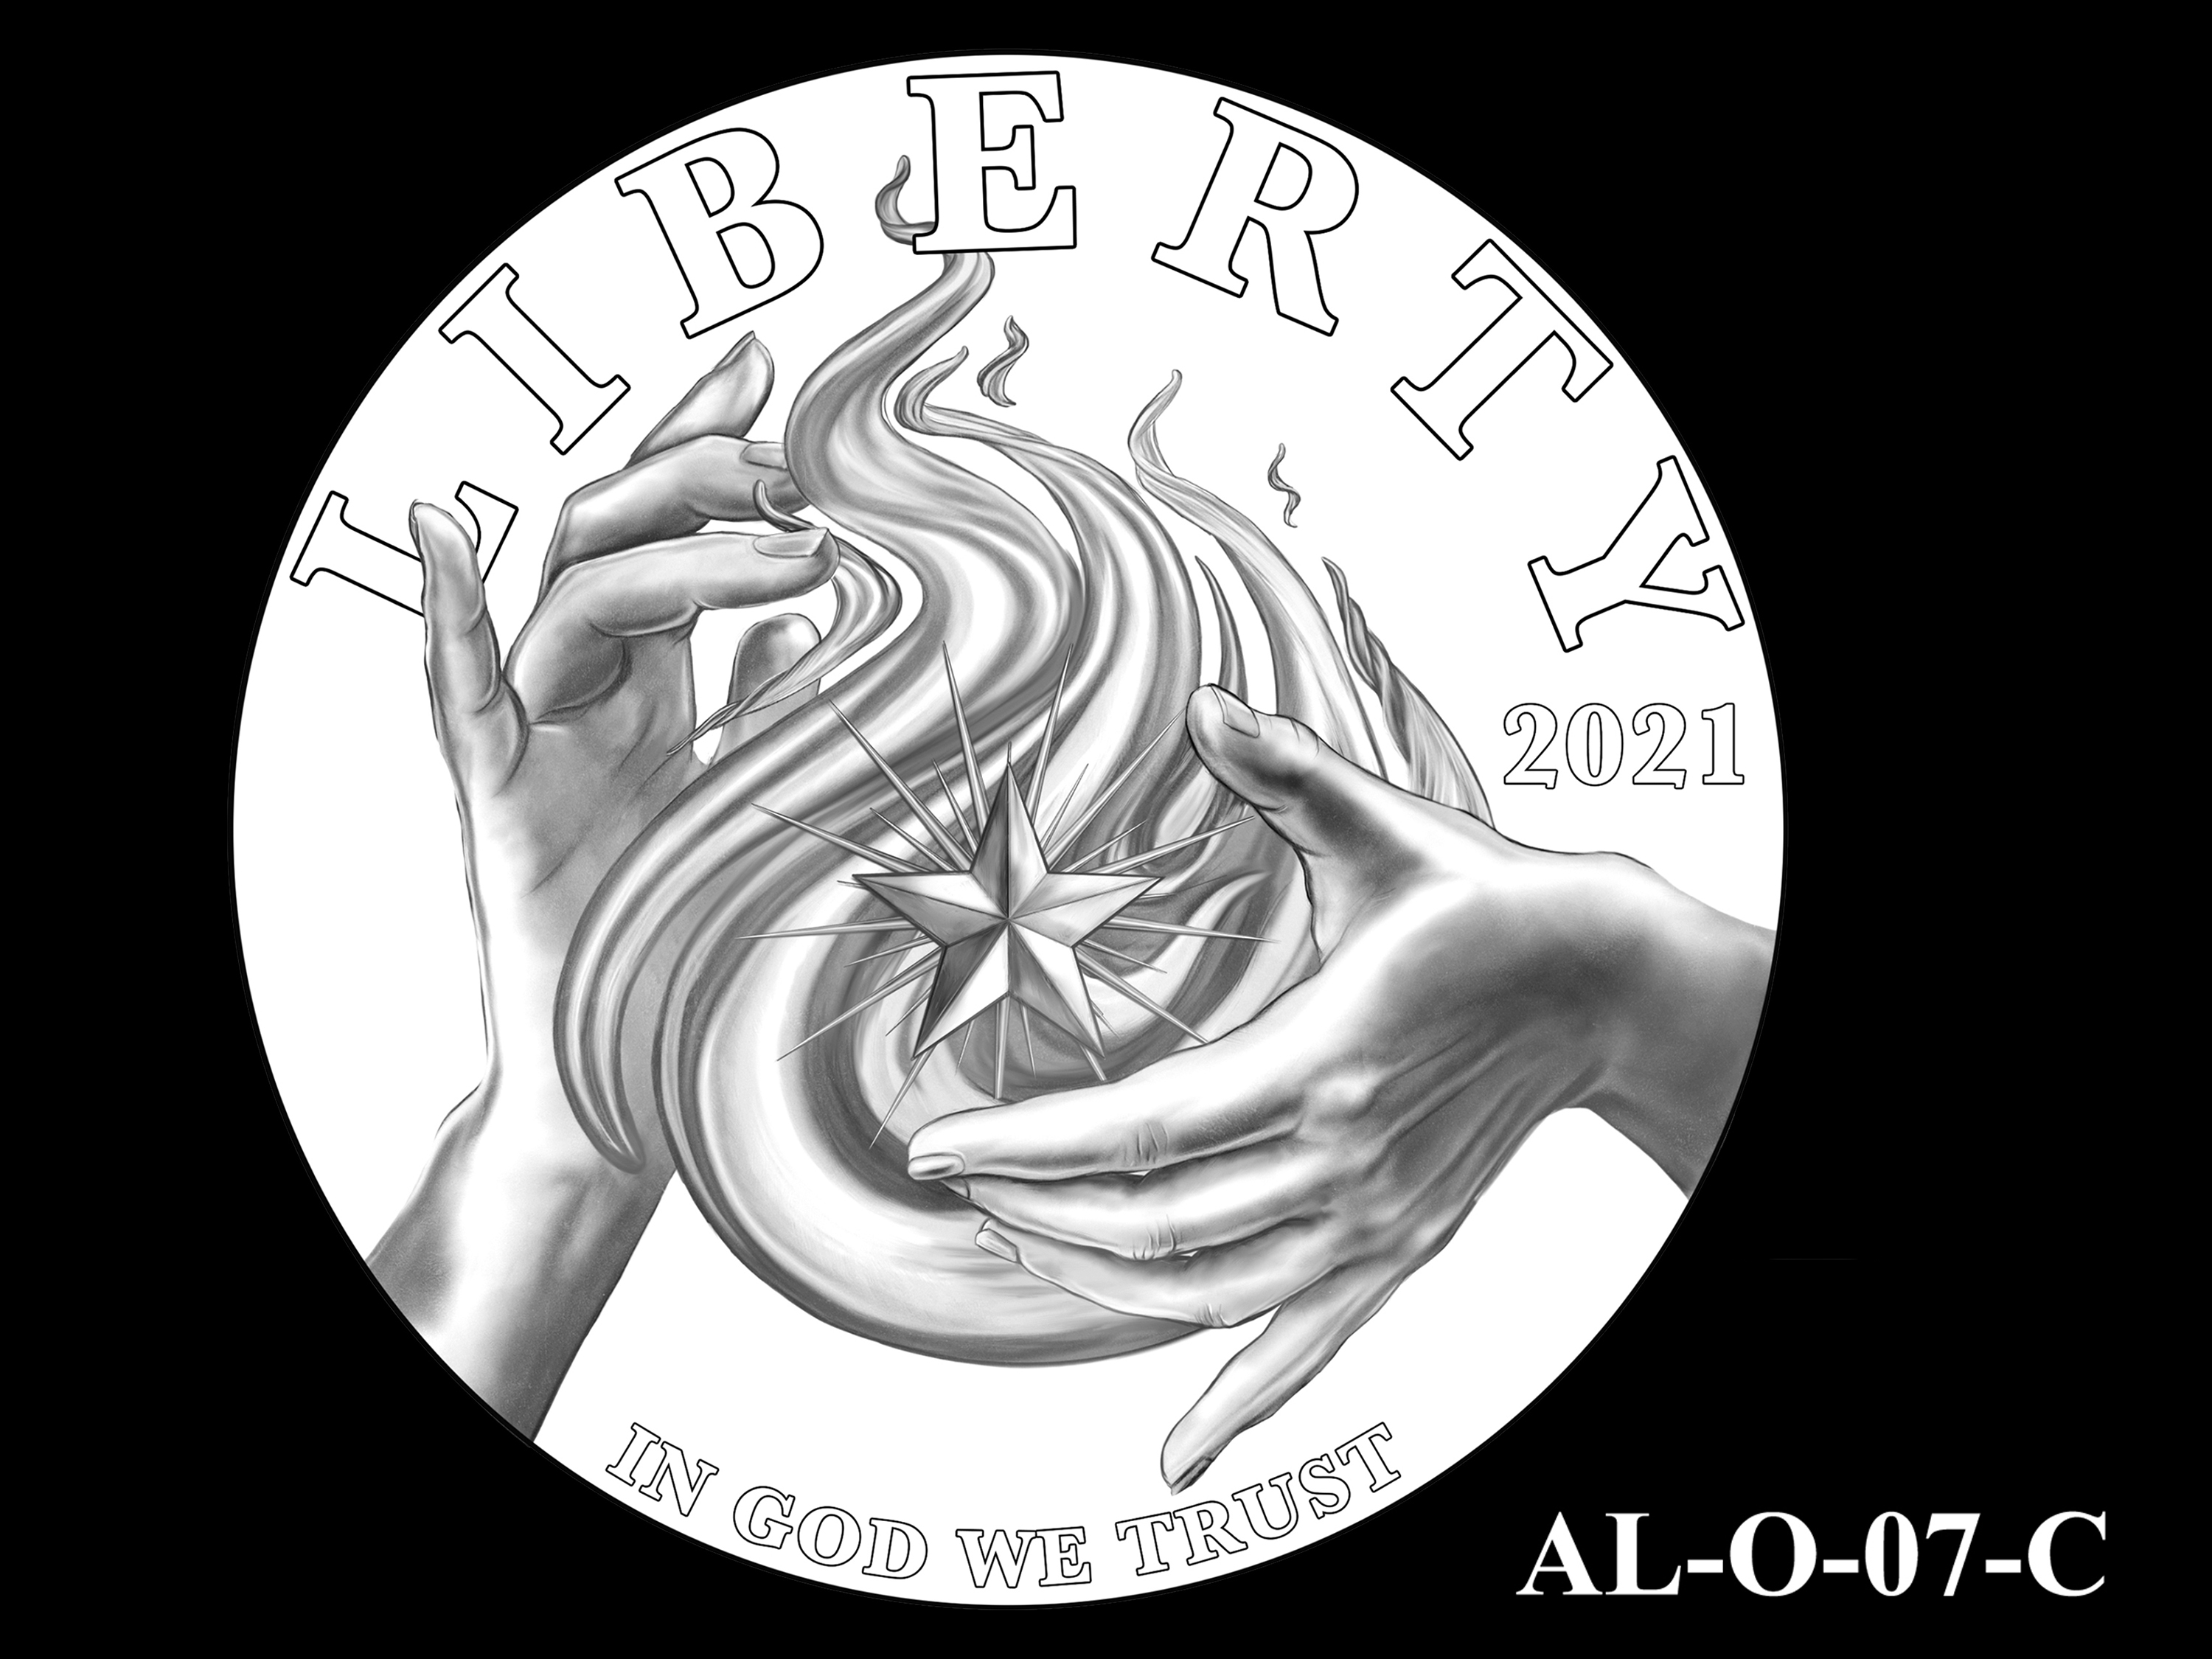 AL-O-07-C -- 2021 American Liberty Gold Coin and Silver Medal Program - Obverse